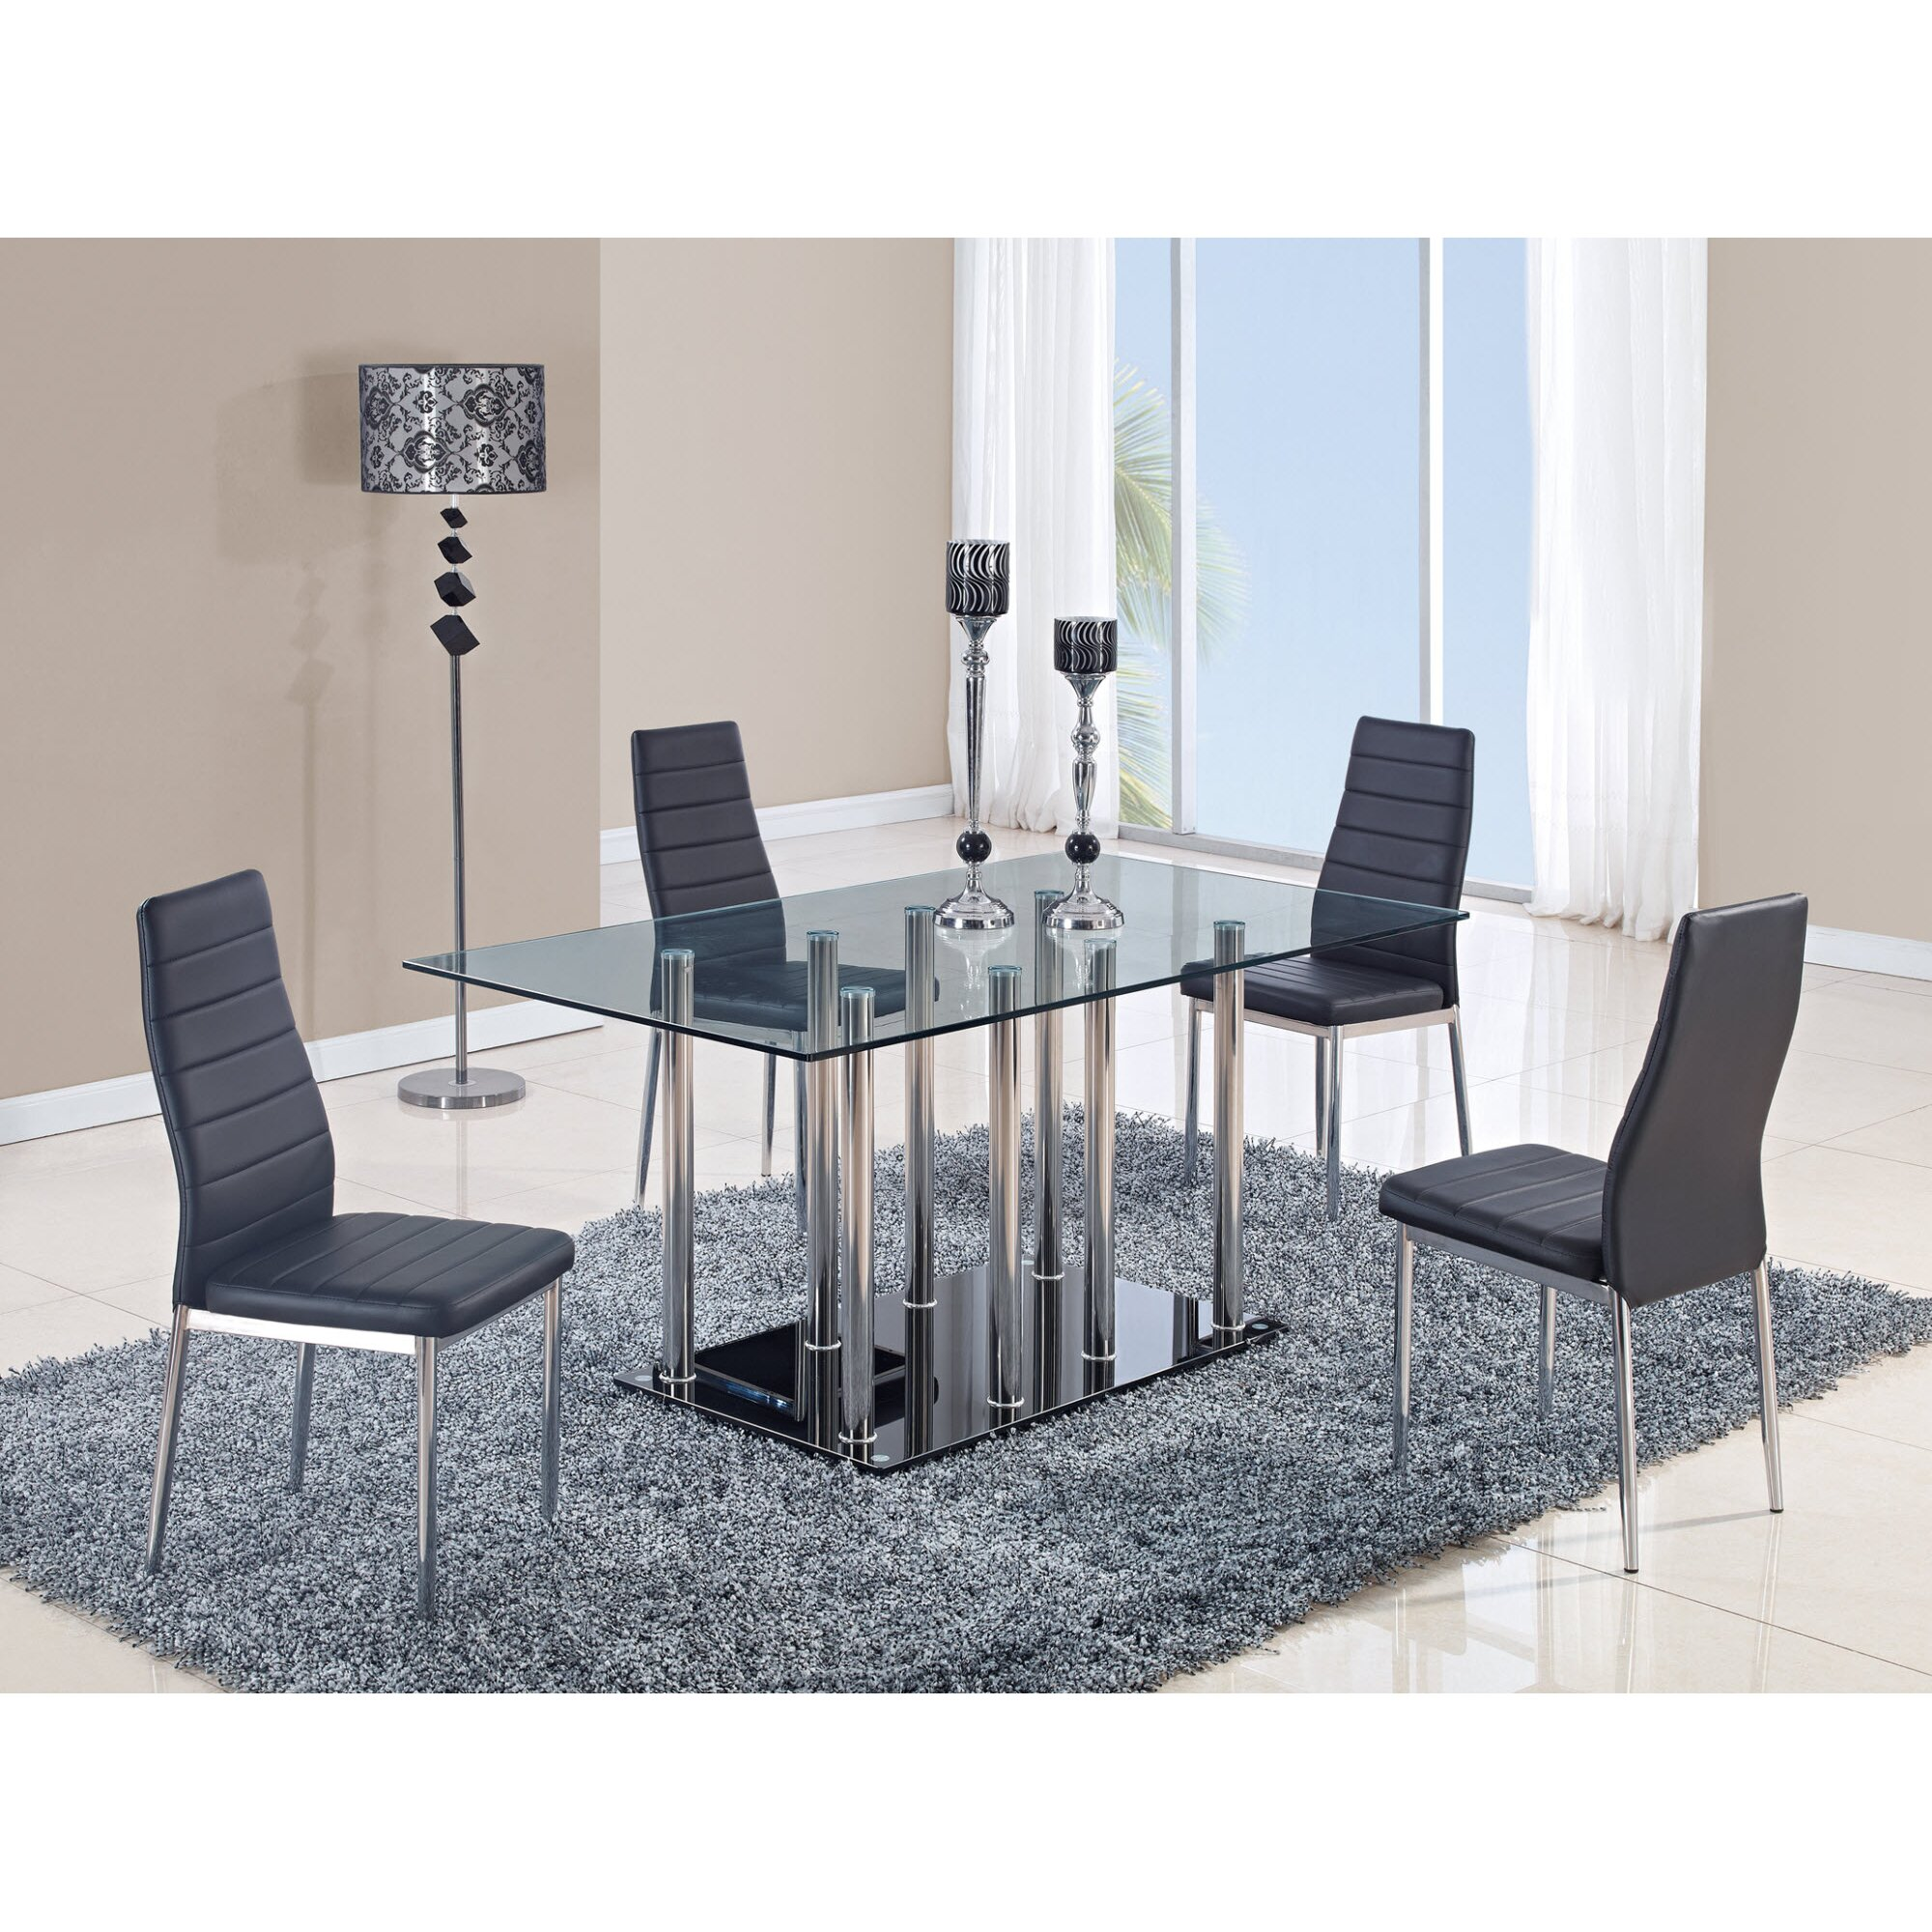 Global furniture usa dining table reviews wayfair for Dining room tables usa